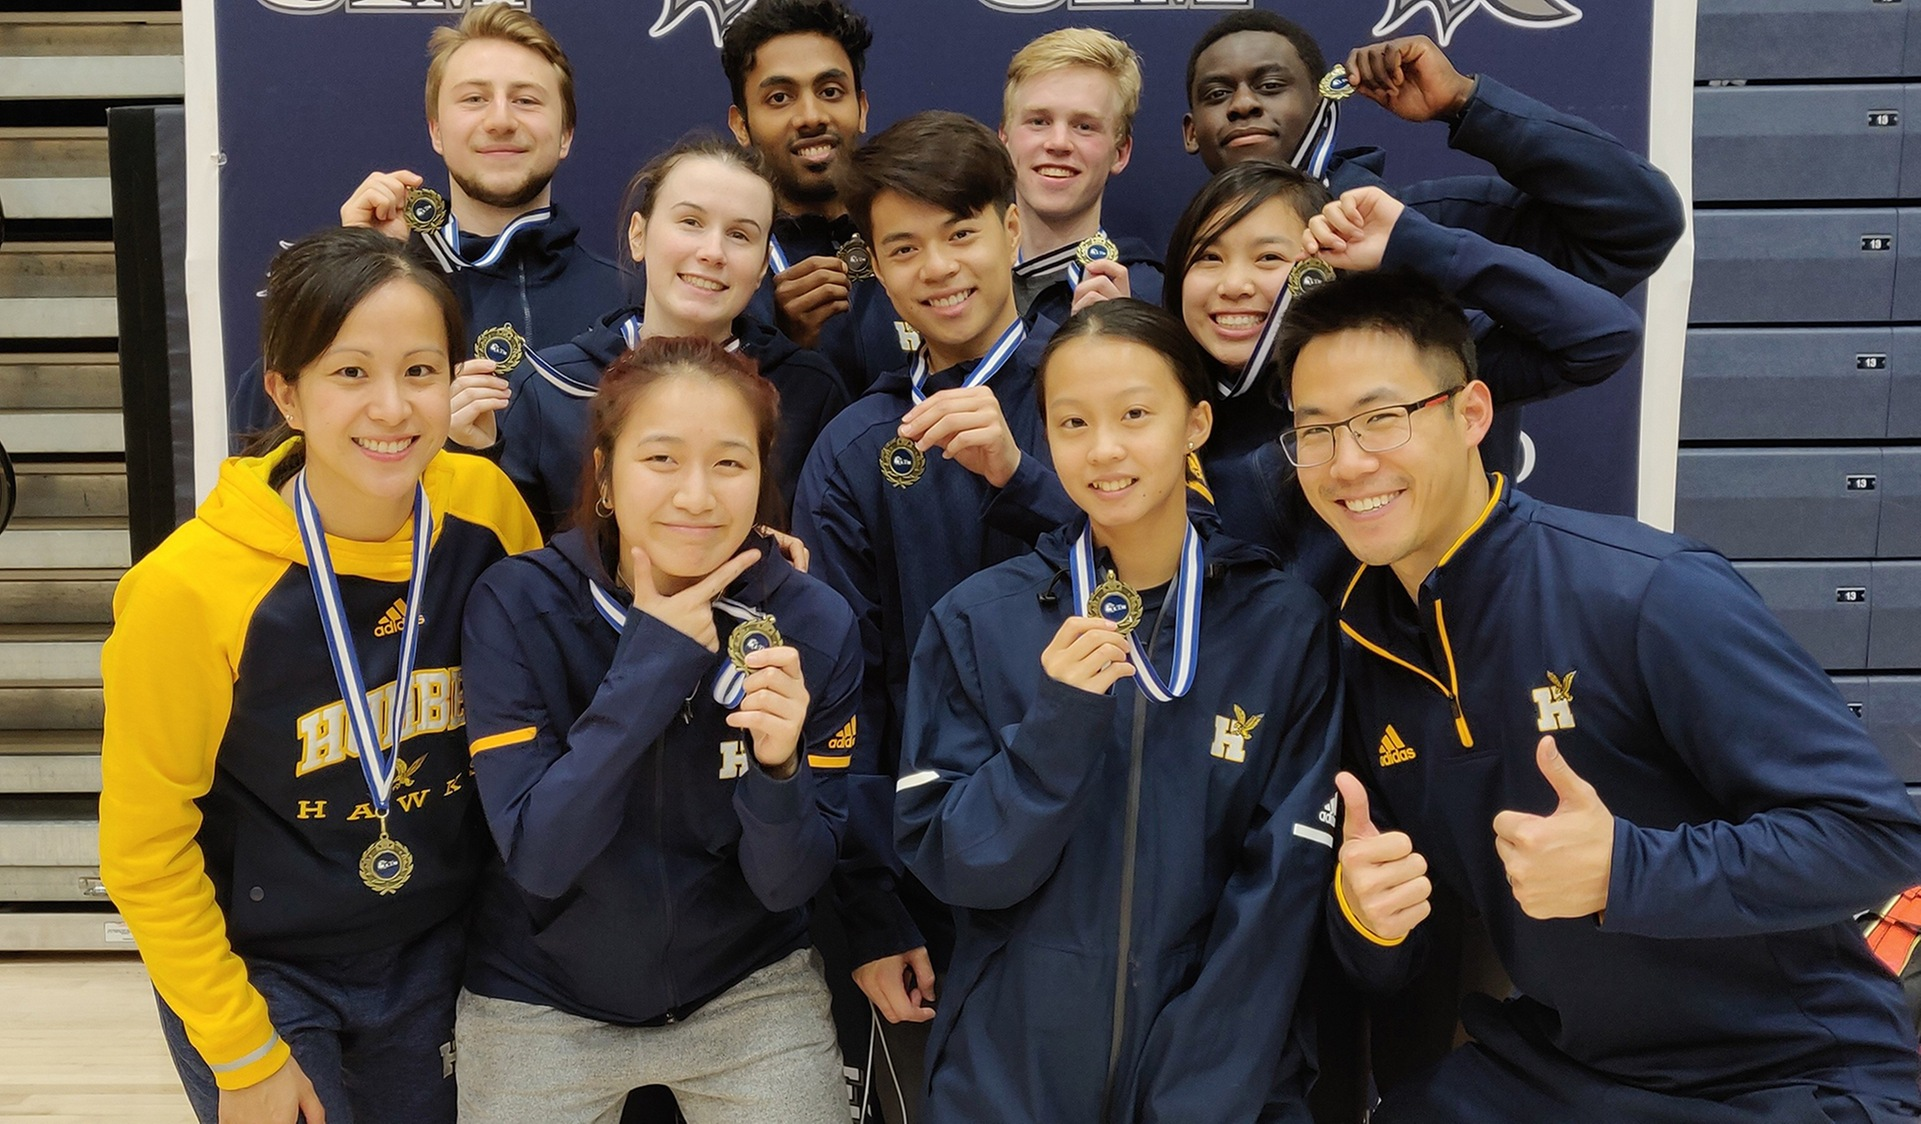 HAWKS BADMINTON ROLL TO VICTORY IN TEAM BADMINTON EVENT AT UTM